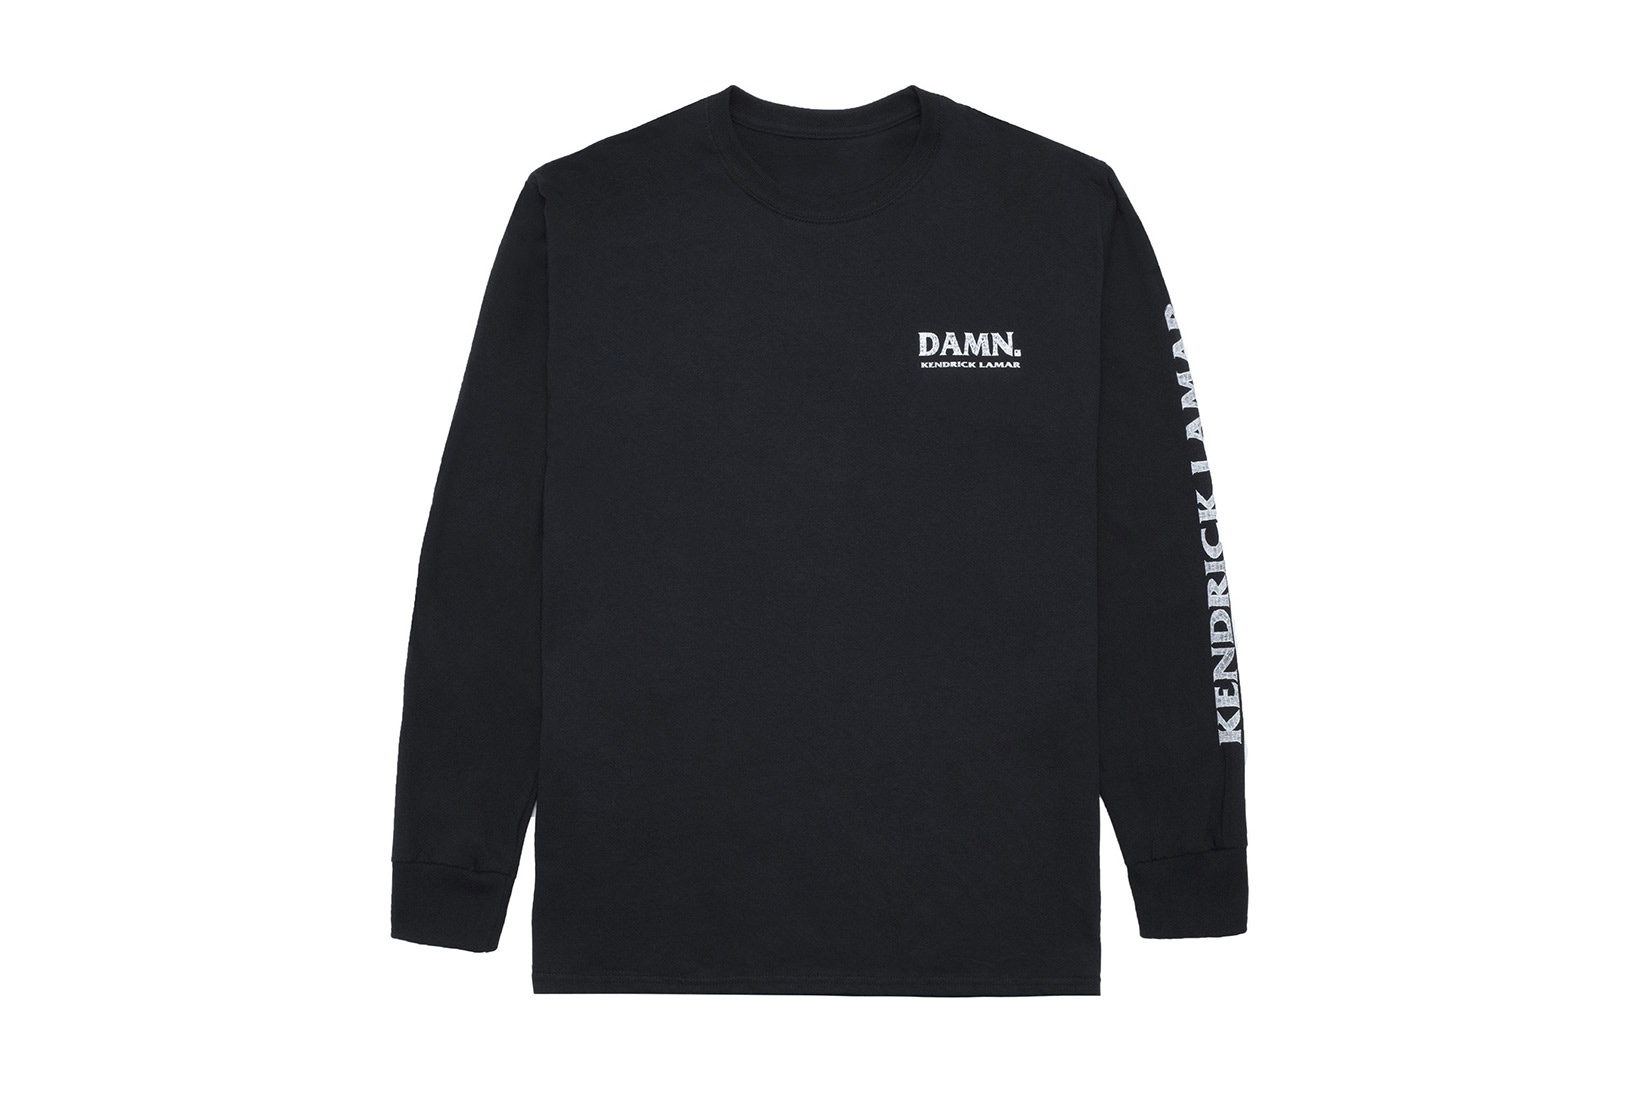 kendrick-lamar-additional-damn-merch-2